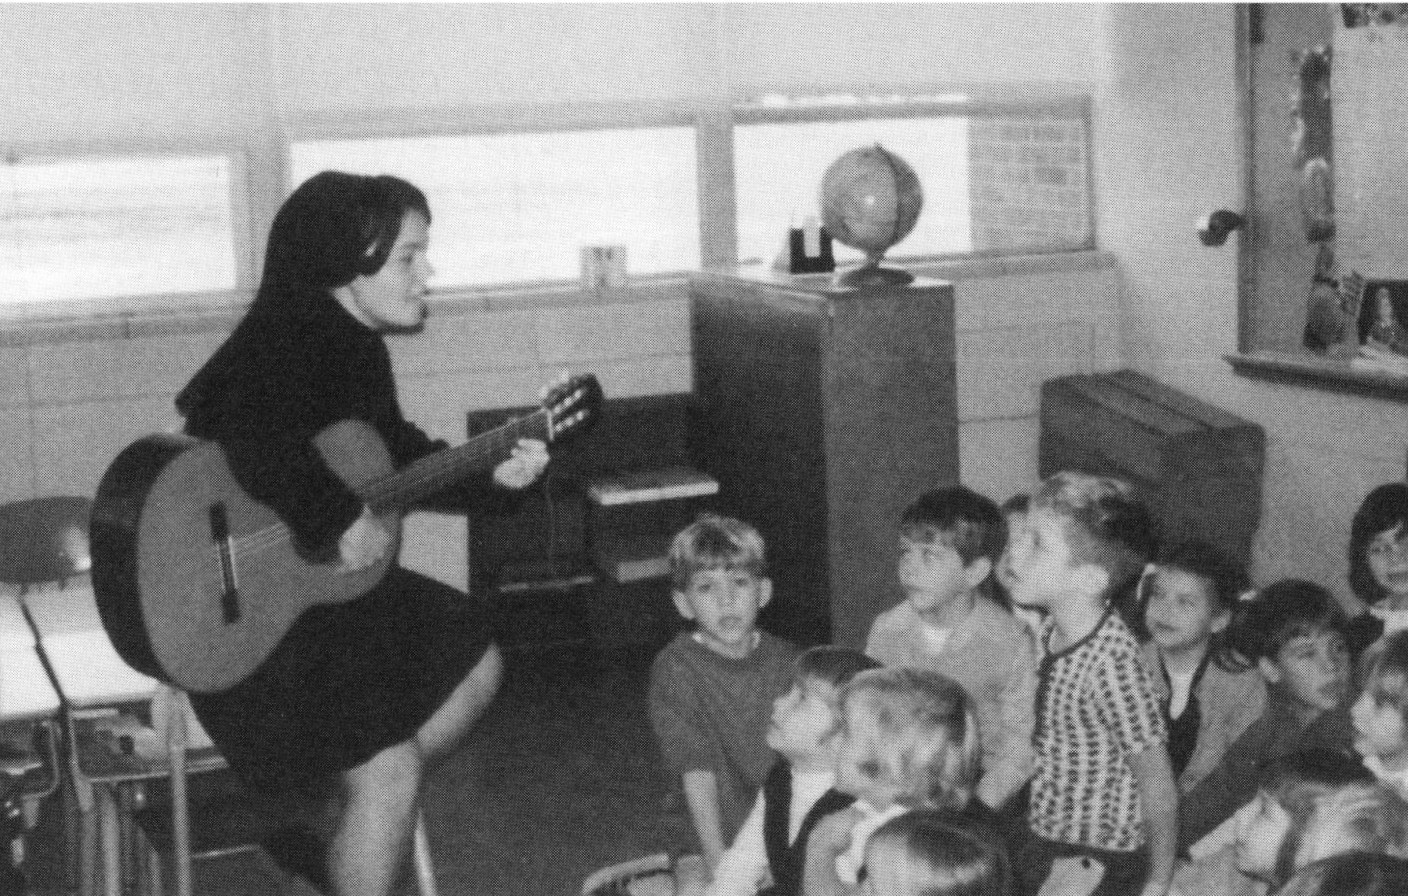 Sister Clare Lawlor sings to her students at Presentation School, 1970s.